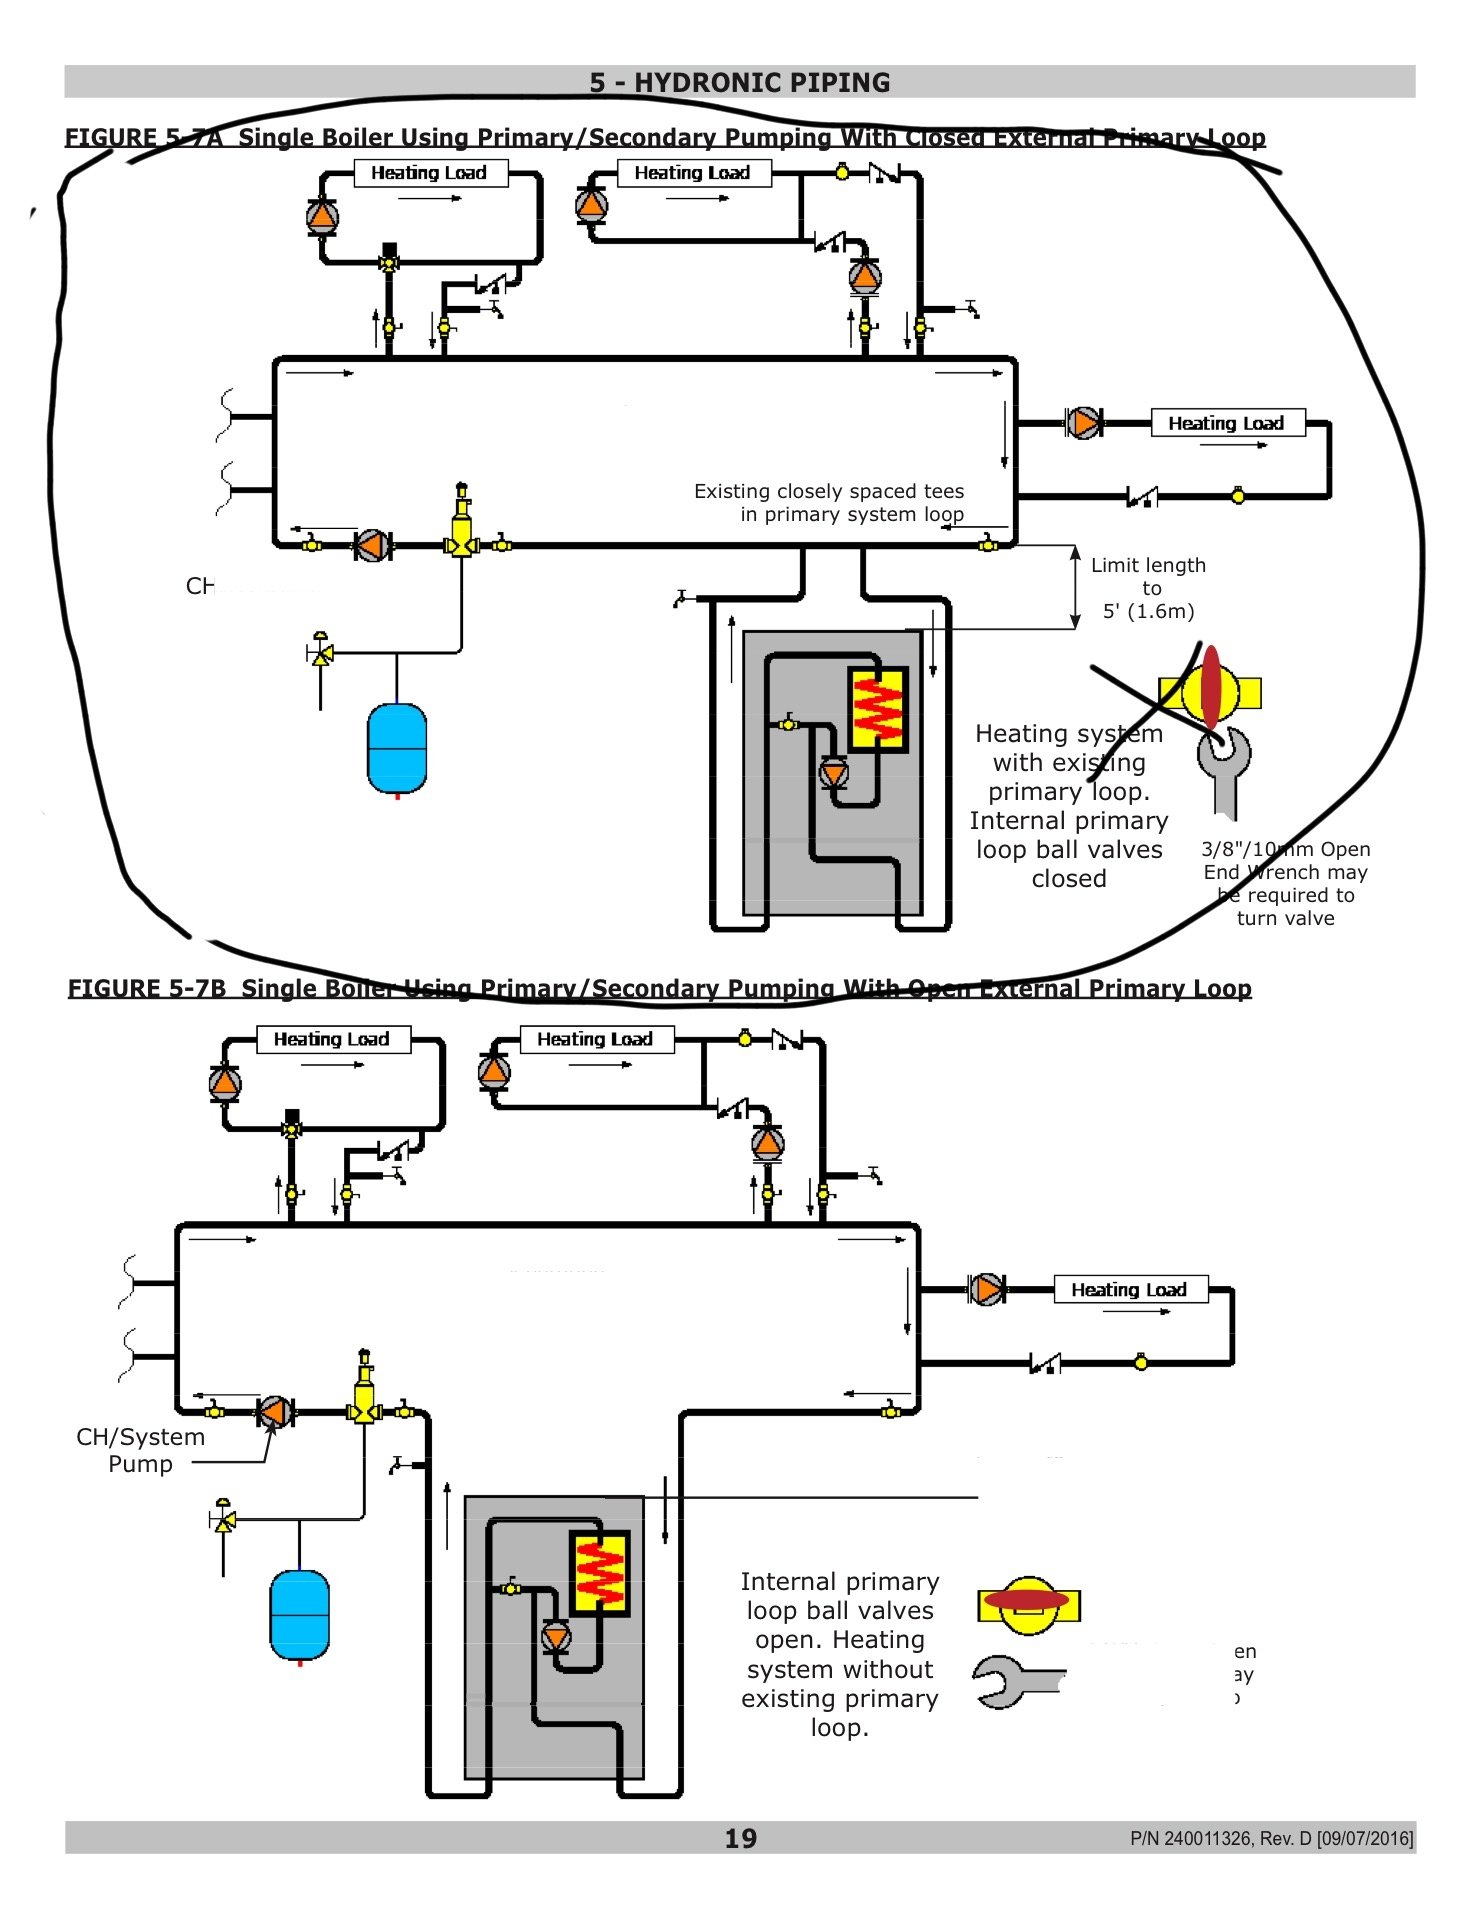 Piping Diagram Hydronic Heating | Wiring Diagram on